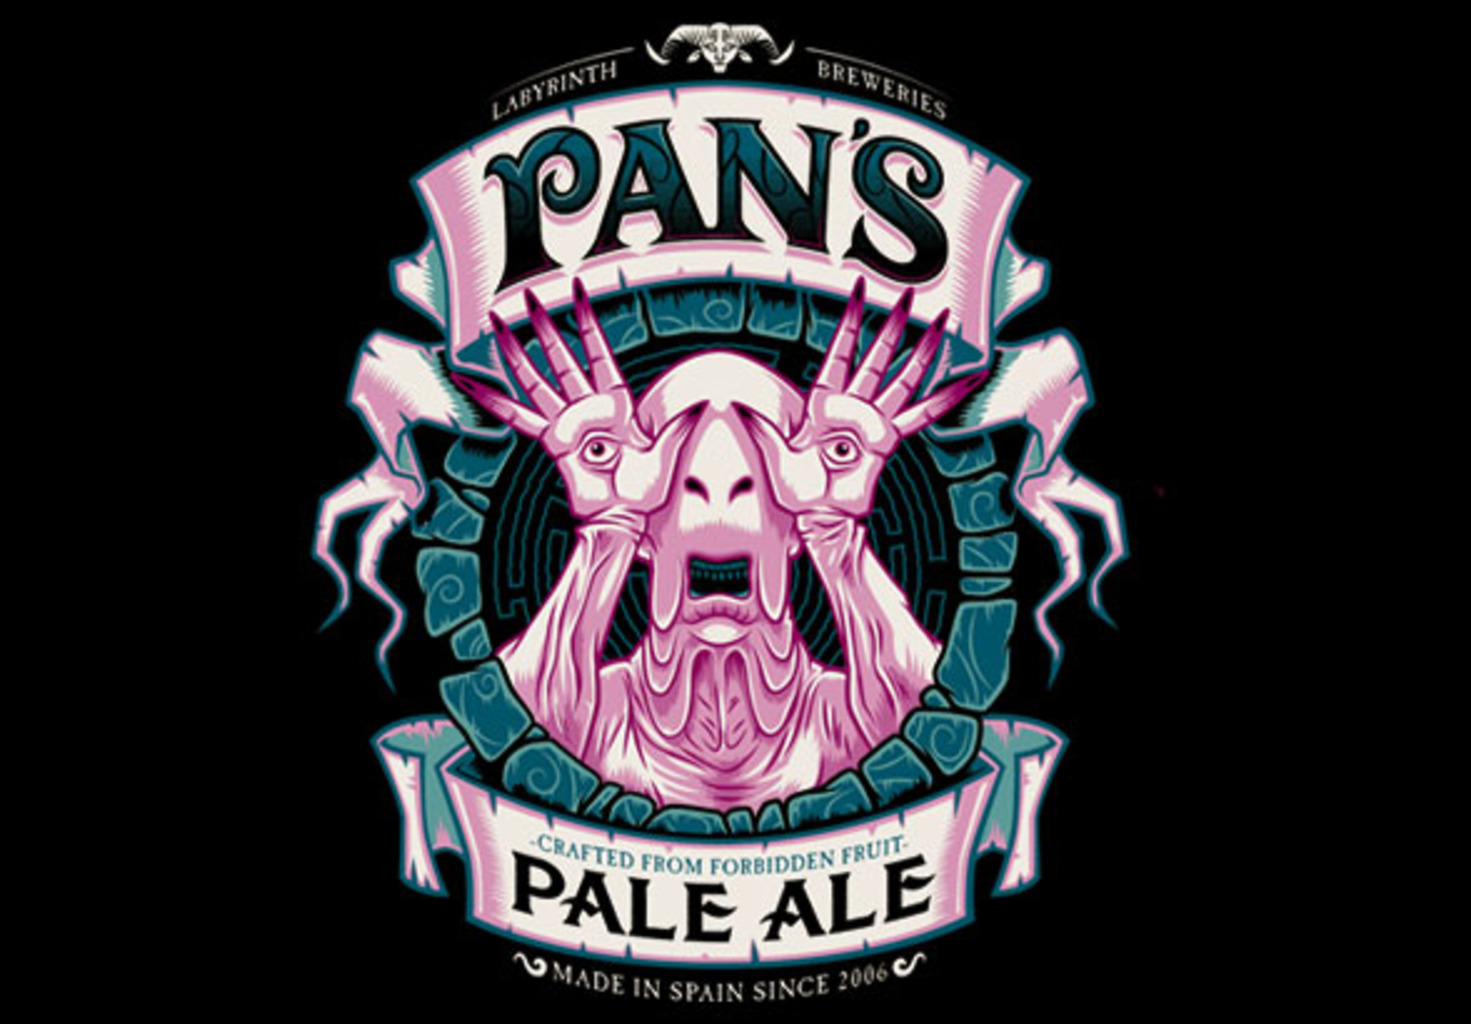 teeVillain: Pan's Pale Ale